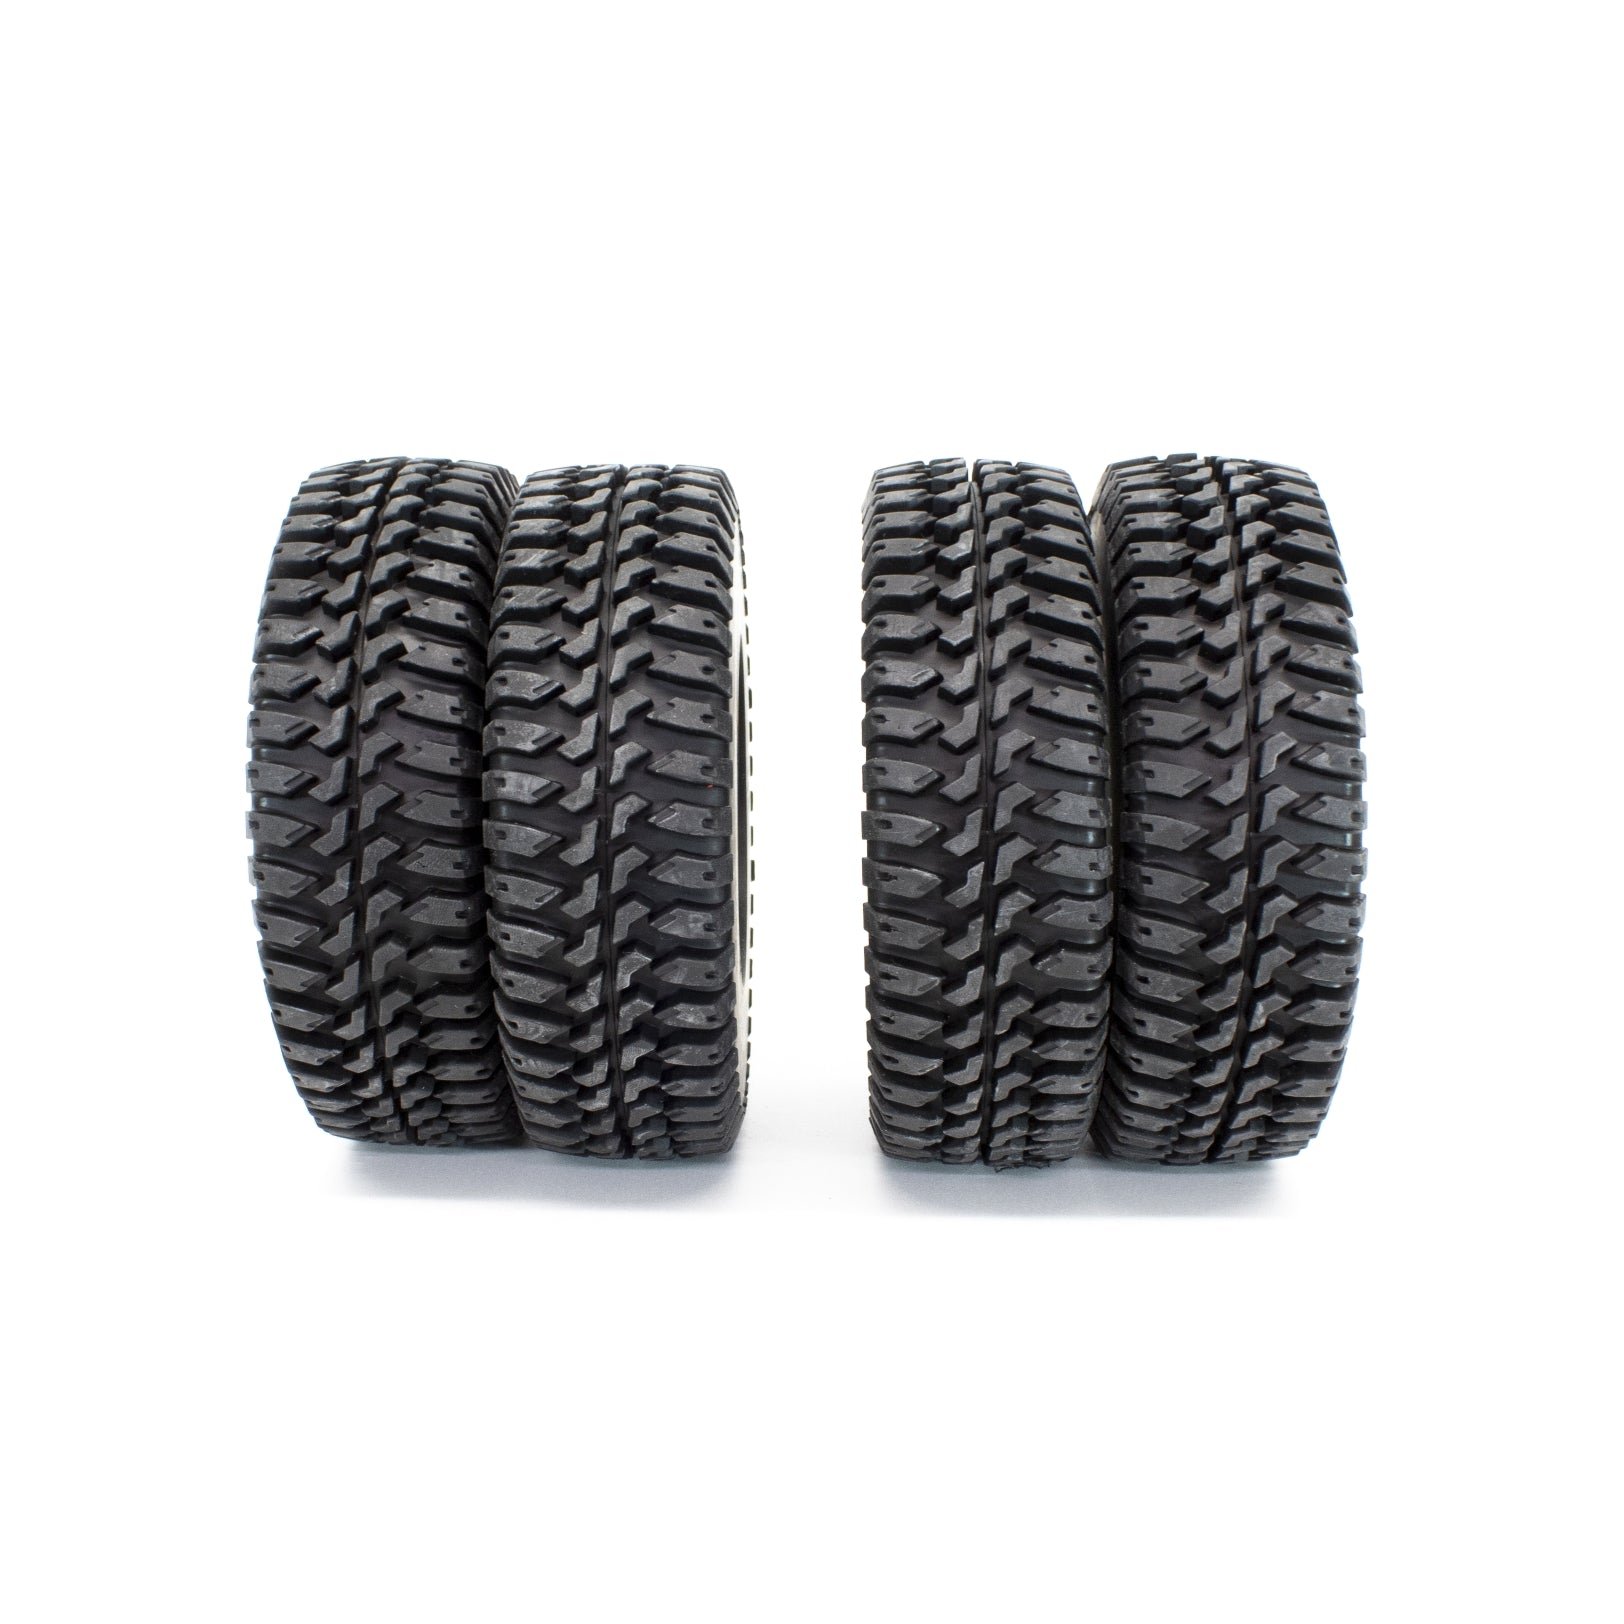 IMEX 3.2 Dually Tires (1 Pair)